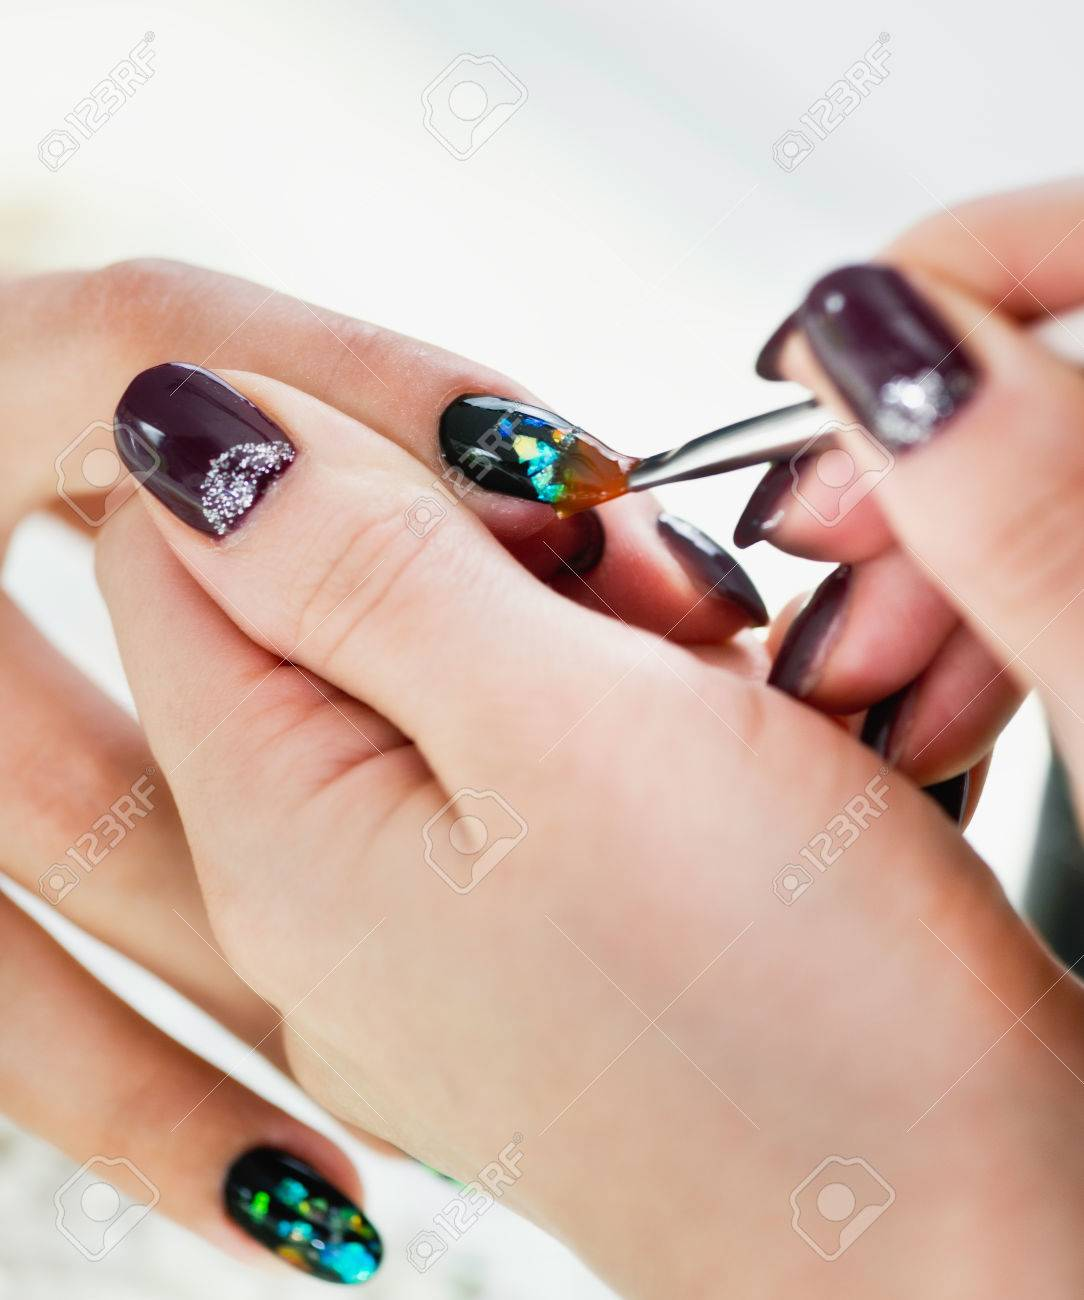 Painting Fingernails In Nail Salon Stock Photo, Picture And Royalty ...